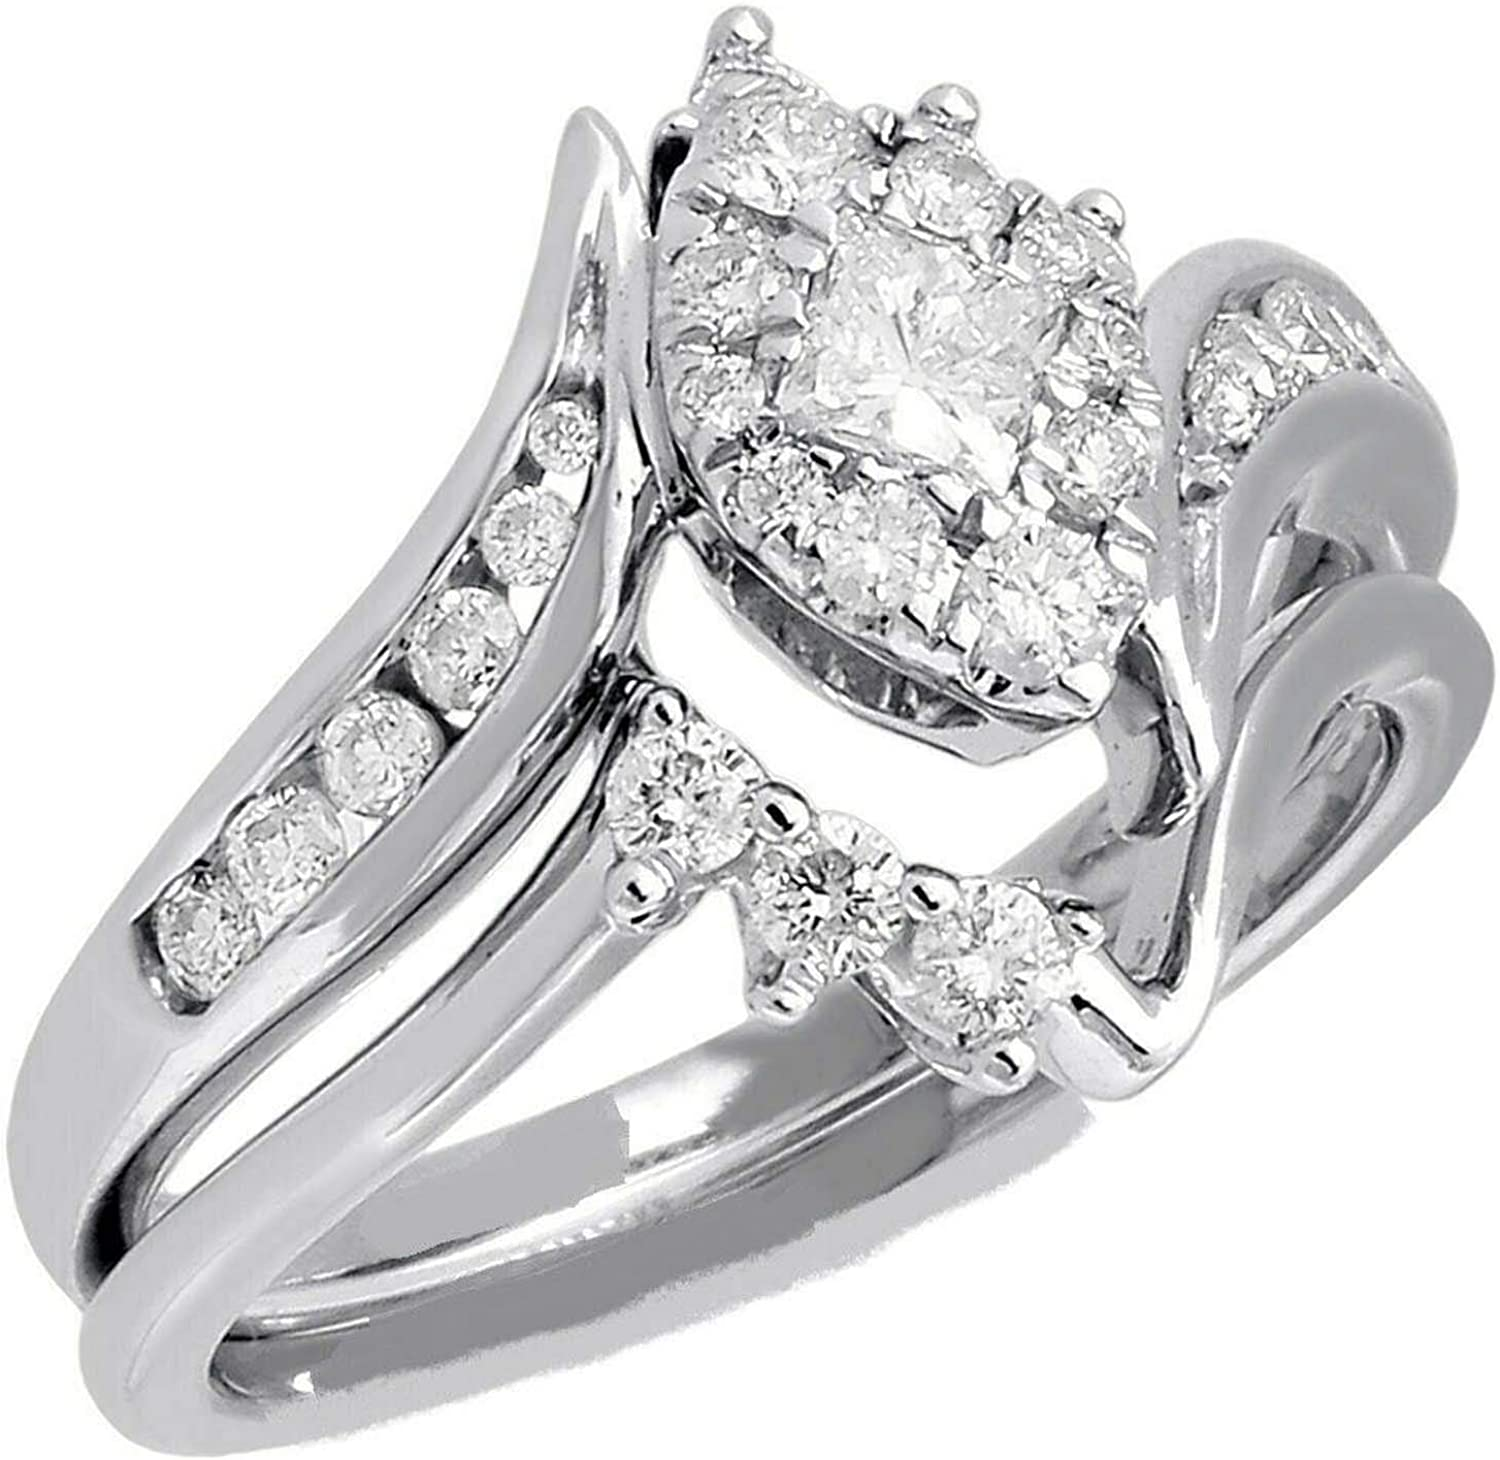 10k Yellow Gold Filled Round Cut Simulated Diamond Bridal Engagement Wedding Ring Set Solid 925 Silver